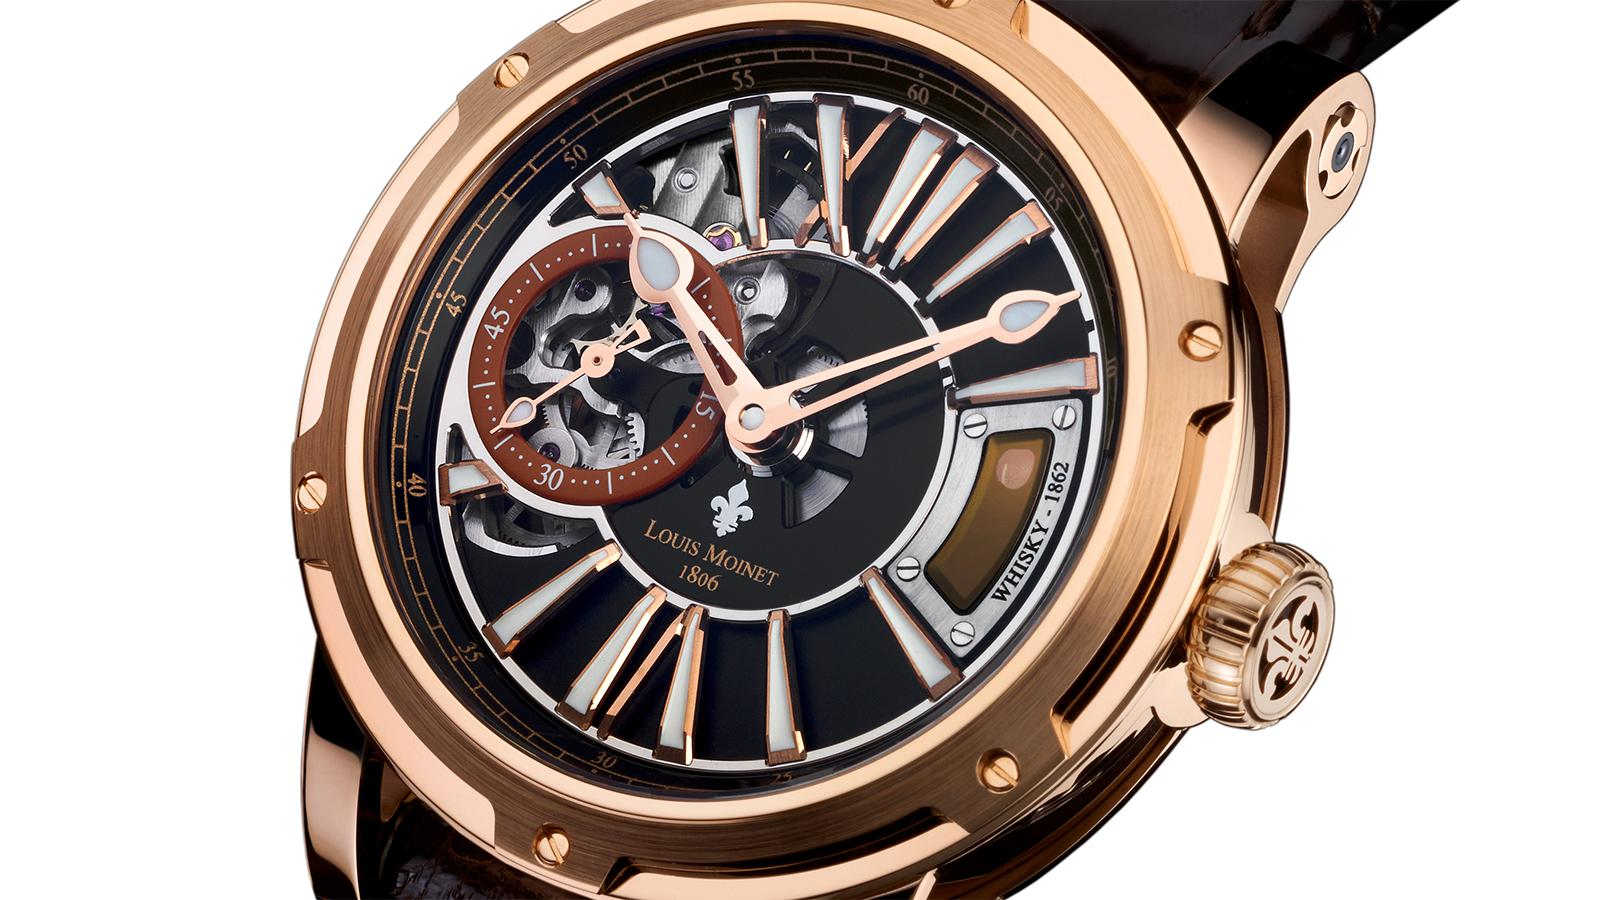 Louis Monet's Whisky Watch in 18-karat rose gold ($49,900).